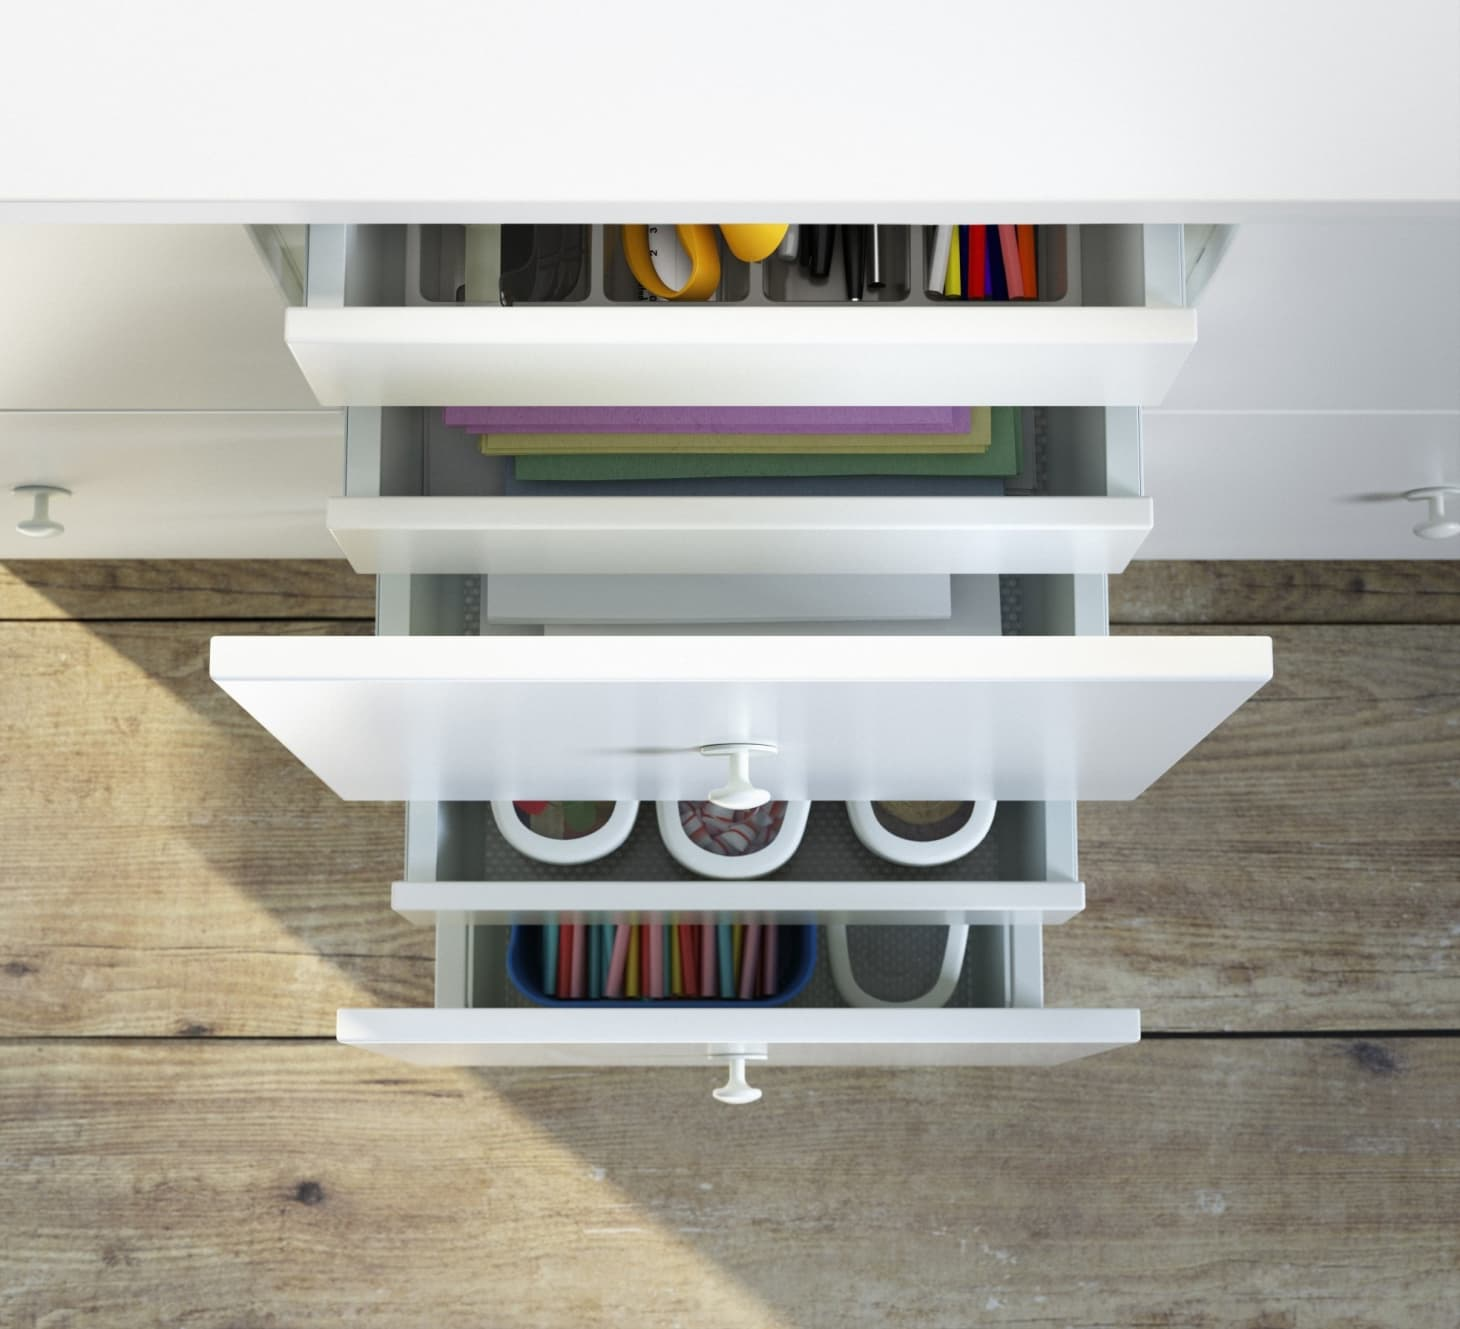 IKEA SEKTION New Kitchen Cabinet Guide: Photos, Prices